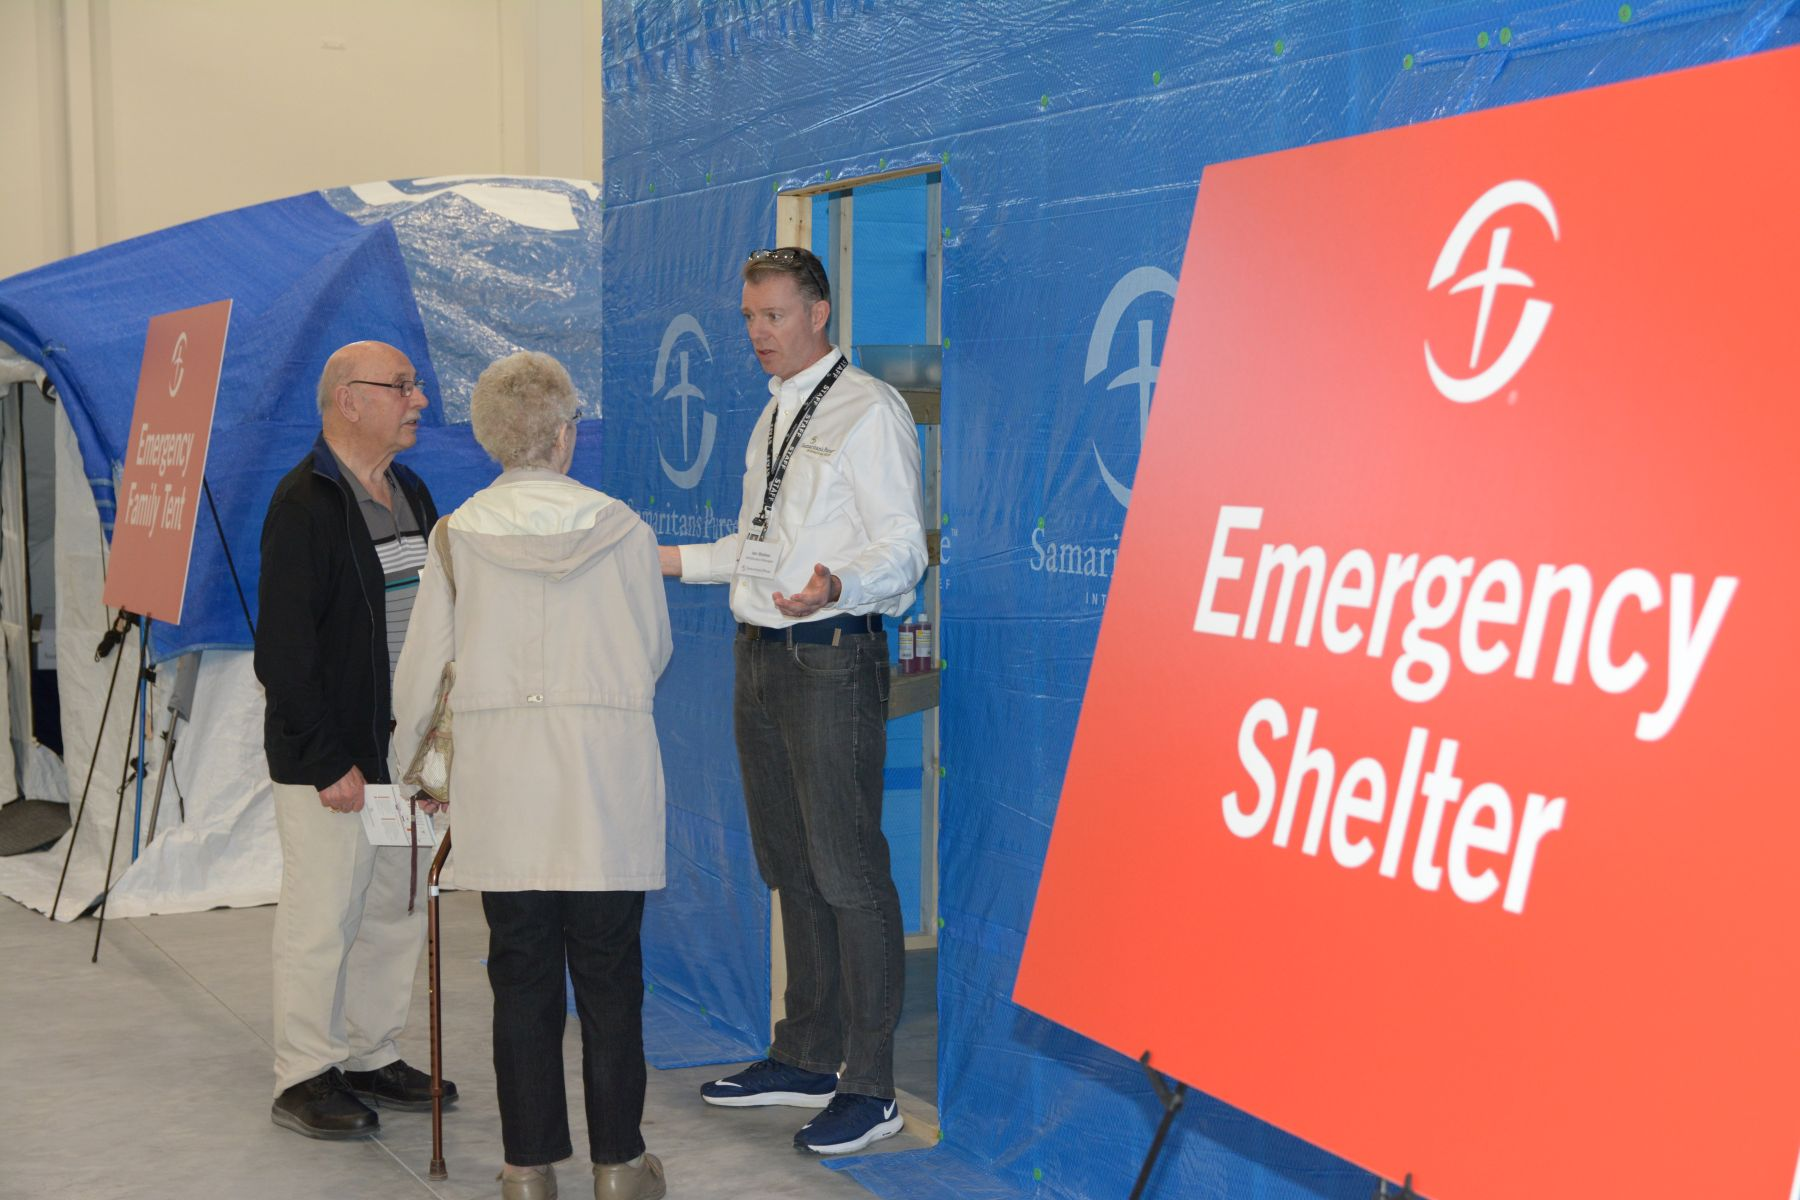 Visitors learned about temporary shelters that Samaritan's Purse has built for disaster victims in places like Haiti.